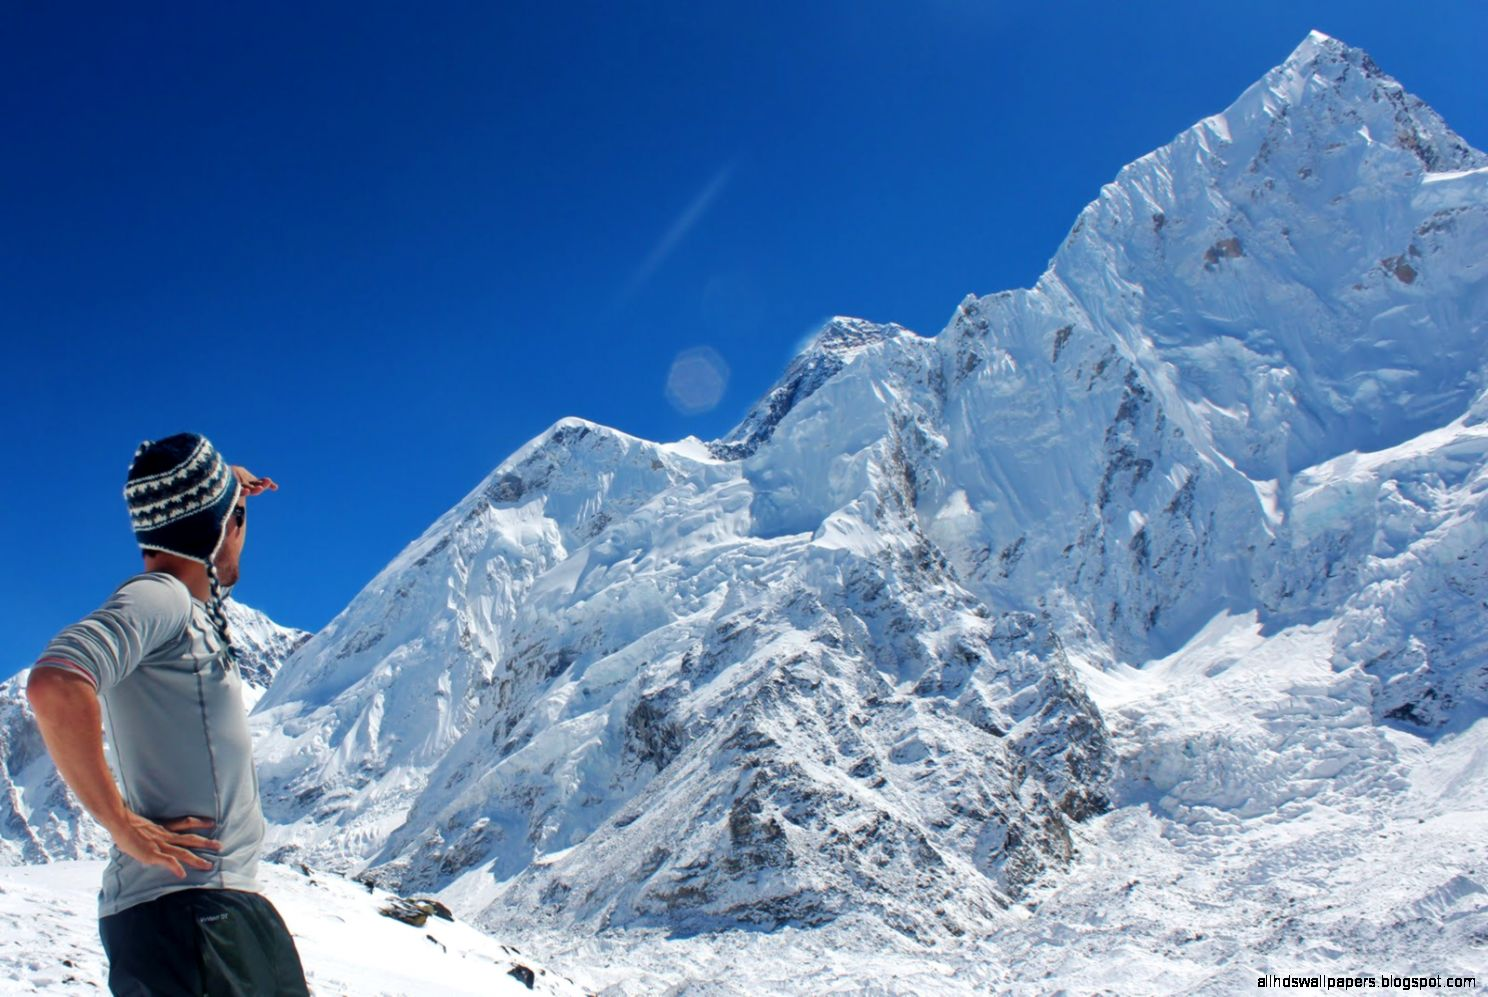 Mount Everest Imgaes Free Download | All HD Wallpapers